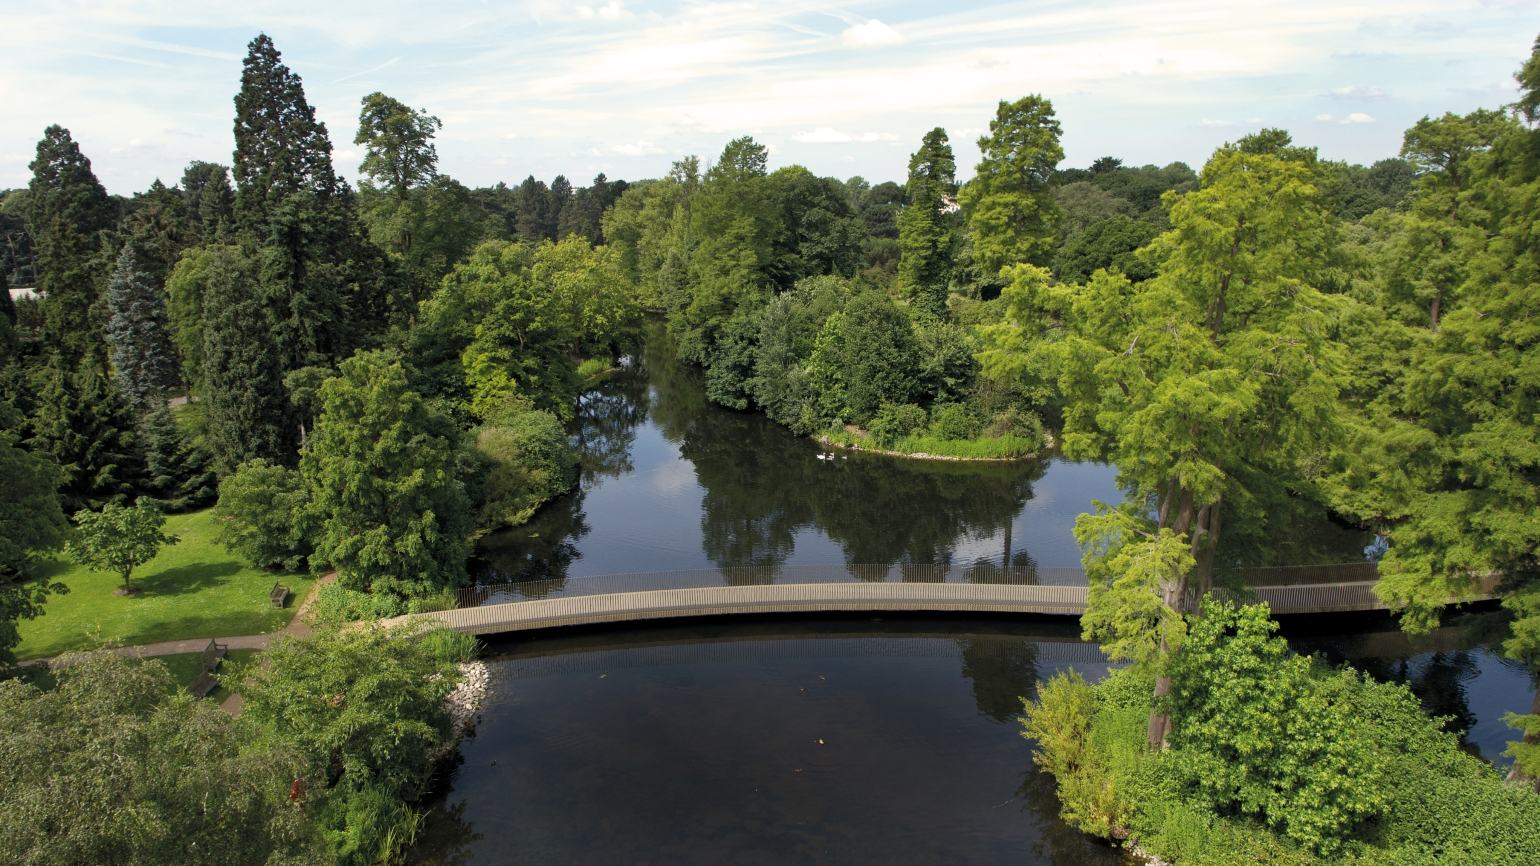 An aerial view of the Lake at Kew